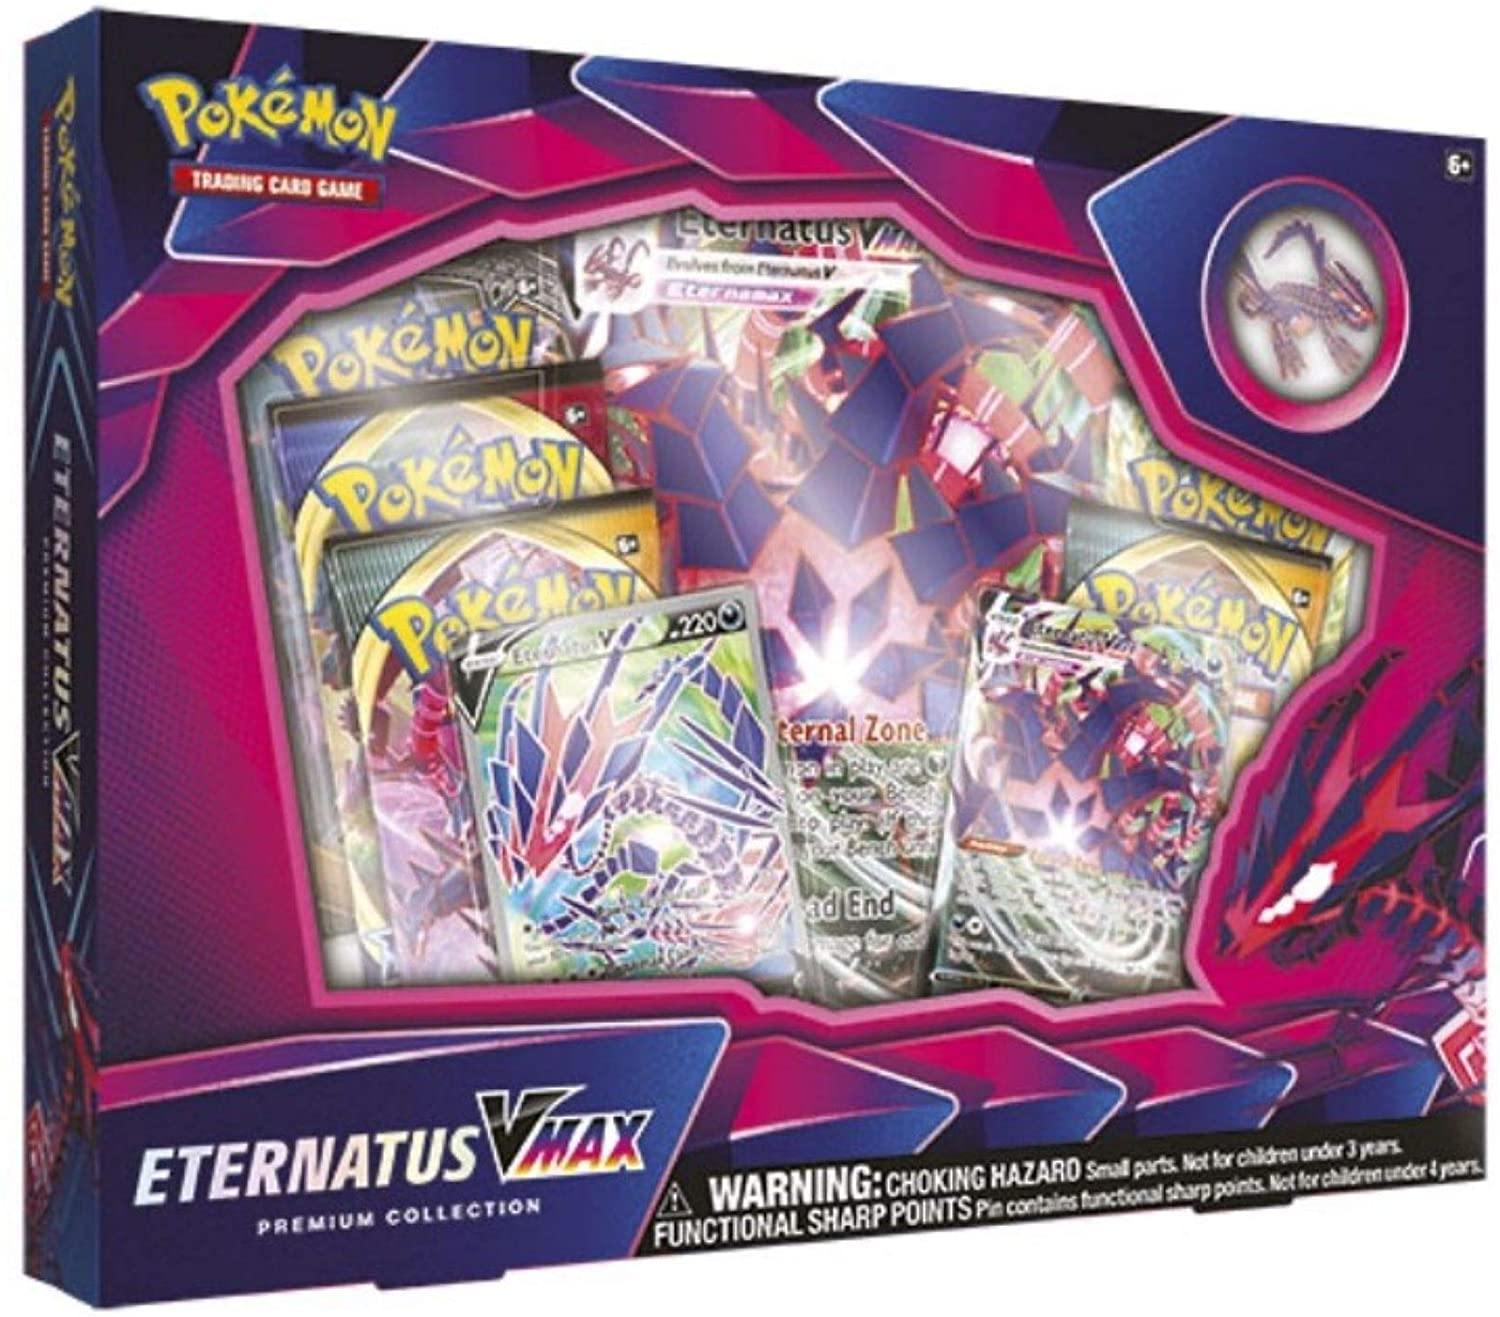 Pokemon Eternatus VMAX Premium Collection | TCG Master